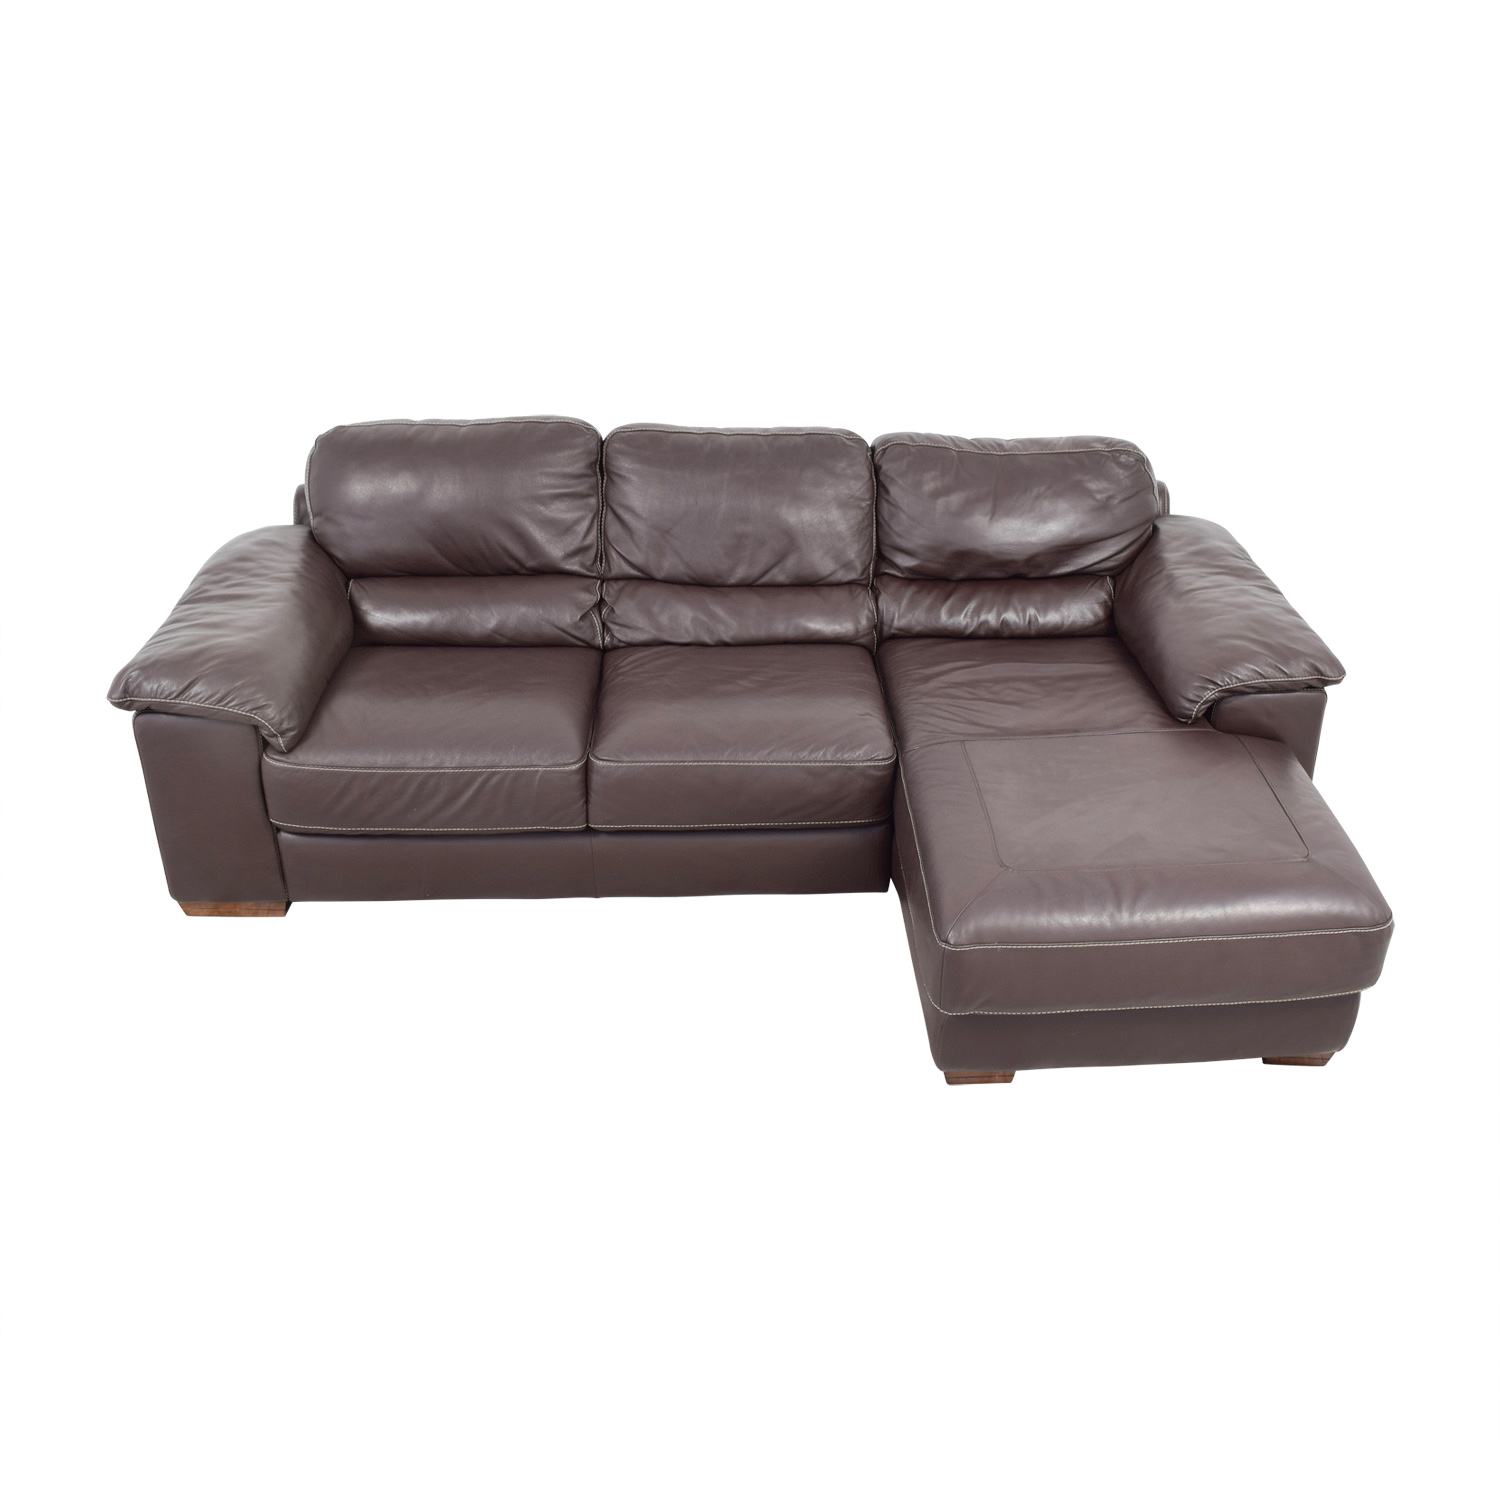 buy Raymour & Flanagan Cindy Crawford Brown Italian Leather Chaise Sectional Raymour & Flanagan